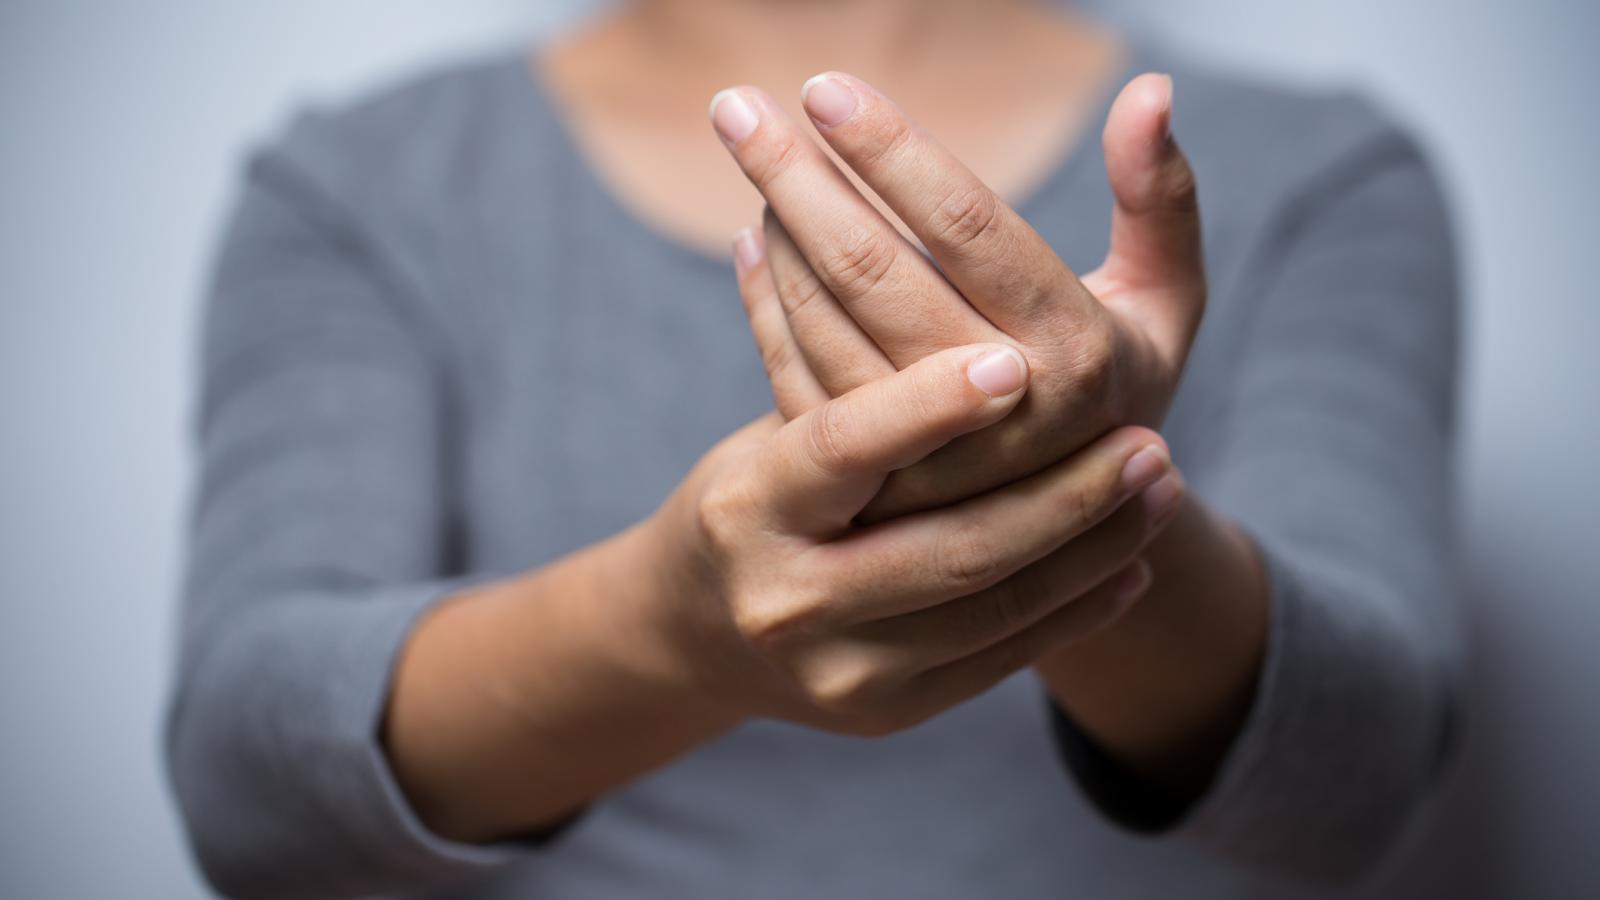 Woman experiencing pain and numbness in her hand